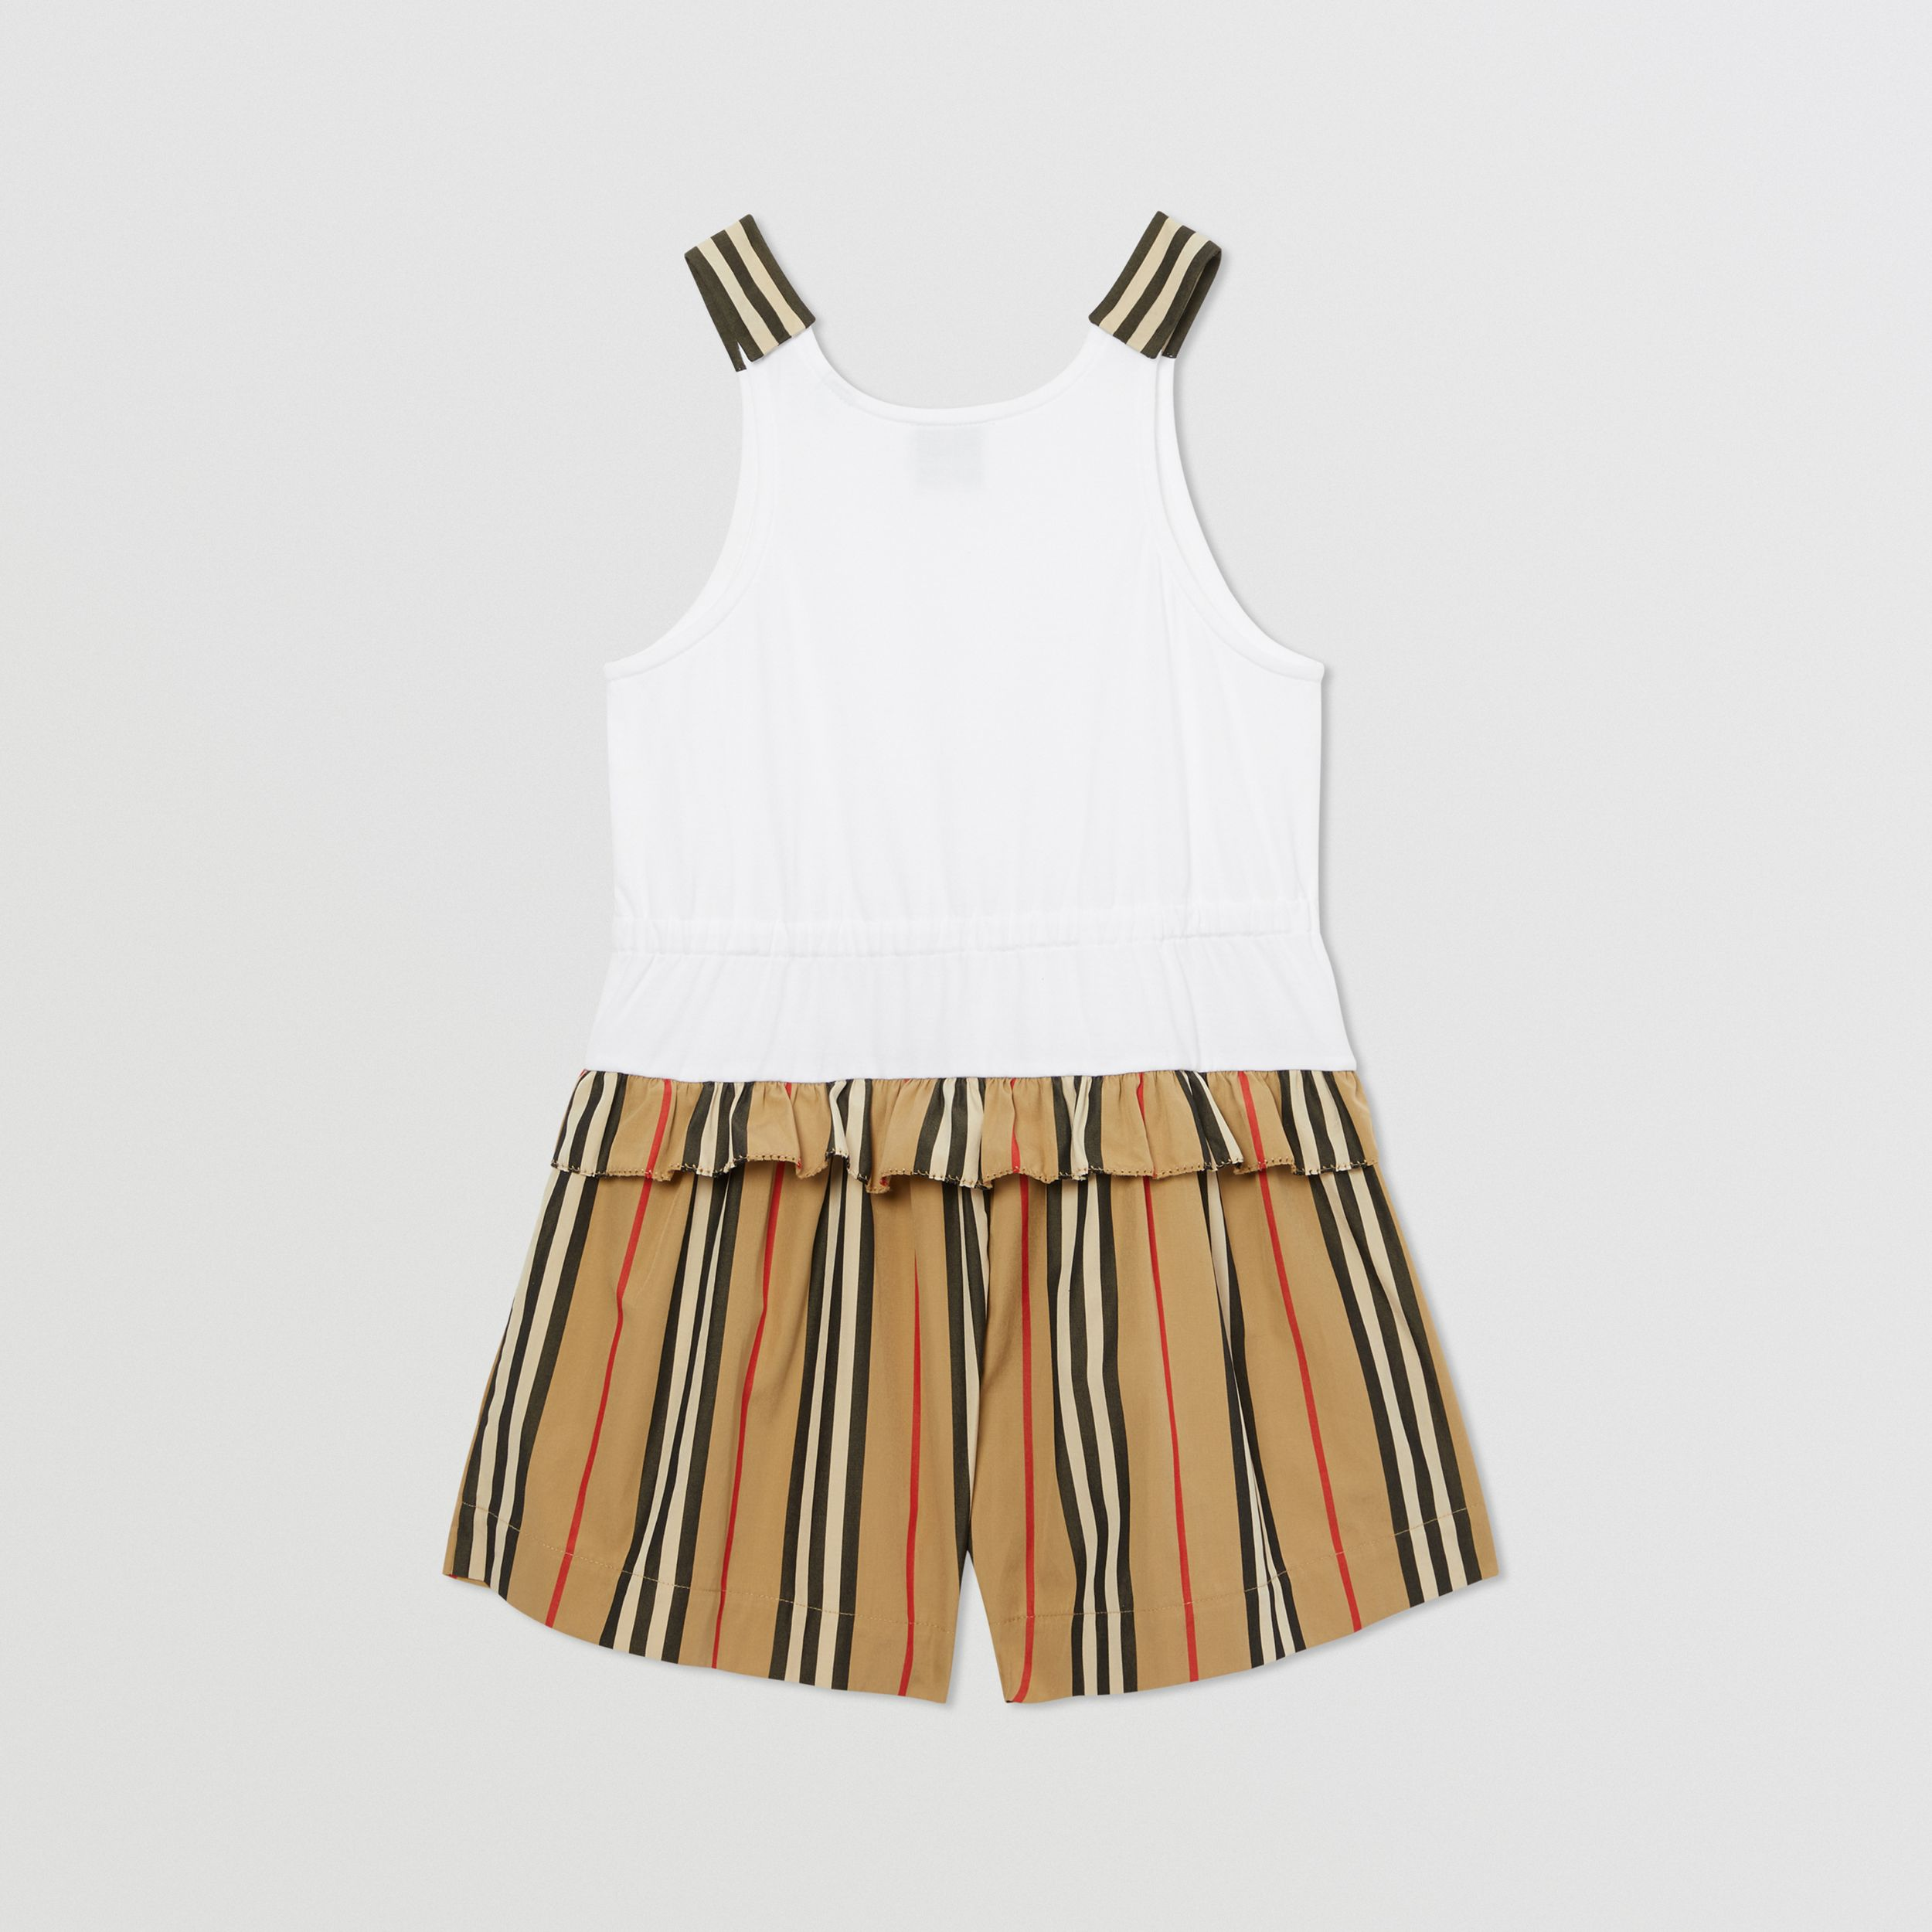 Monogram Motif Icon Stripe Detail Cotton Playsuit in Archive Beige | Burberry United Kingdom - 4